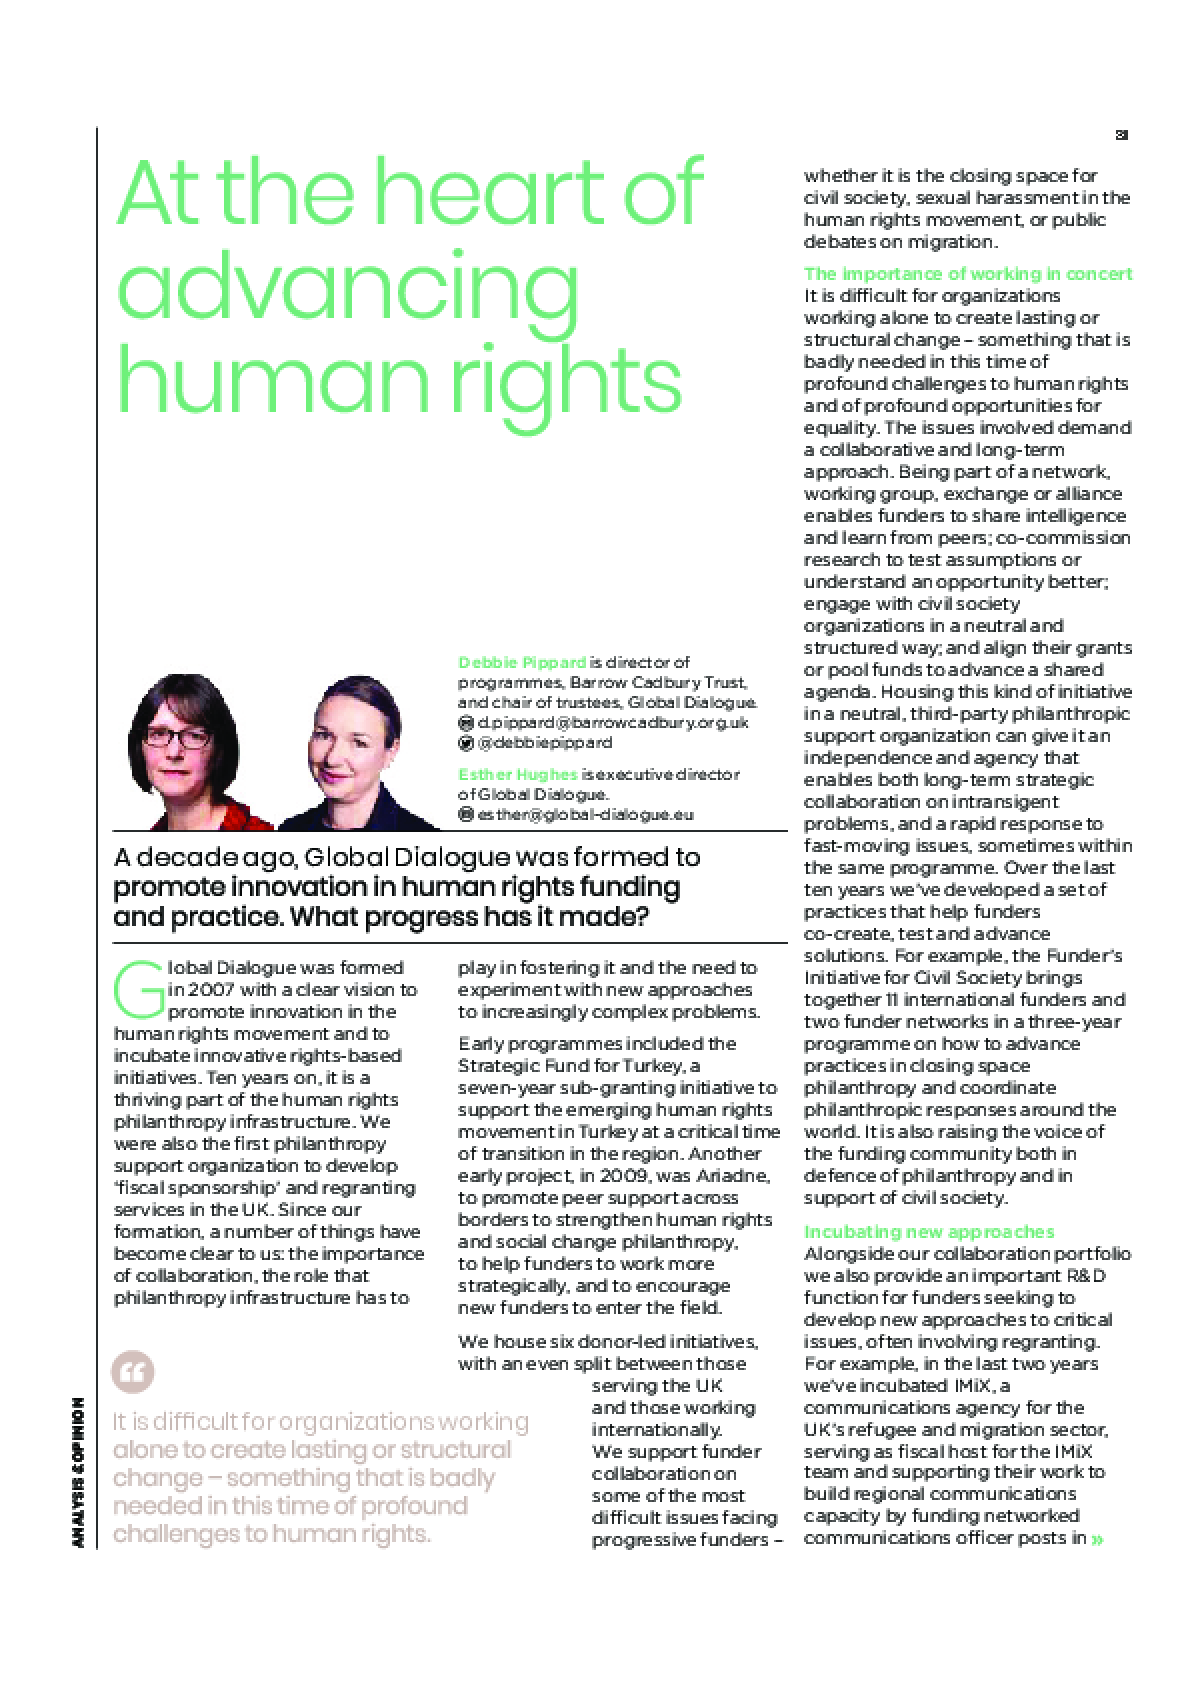 At the heart of advancing human rights